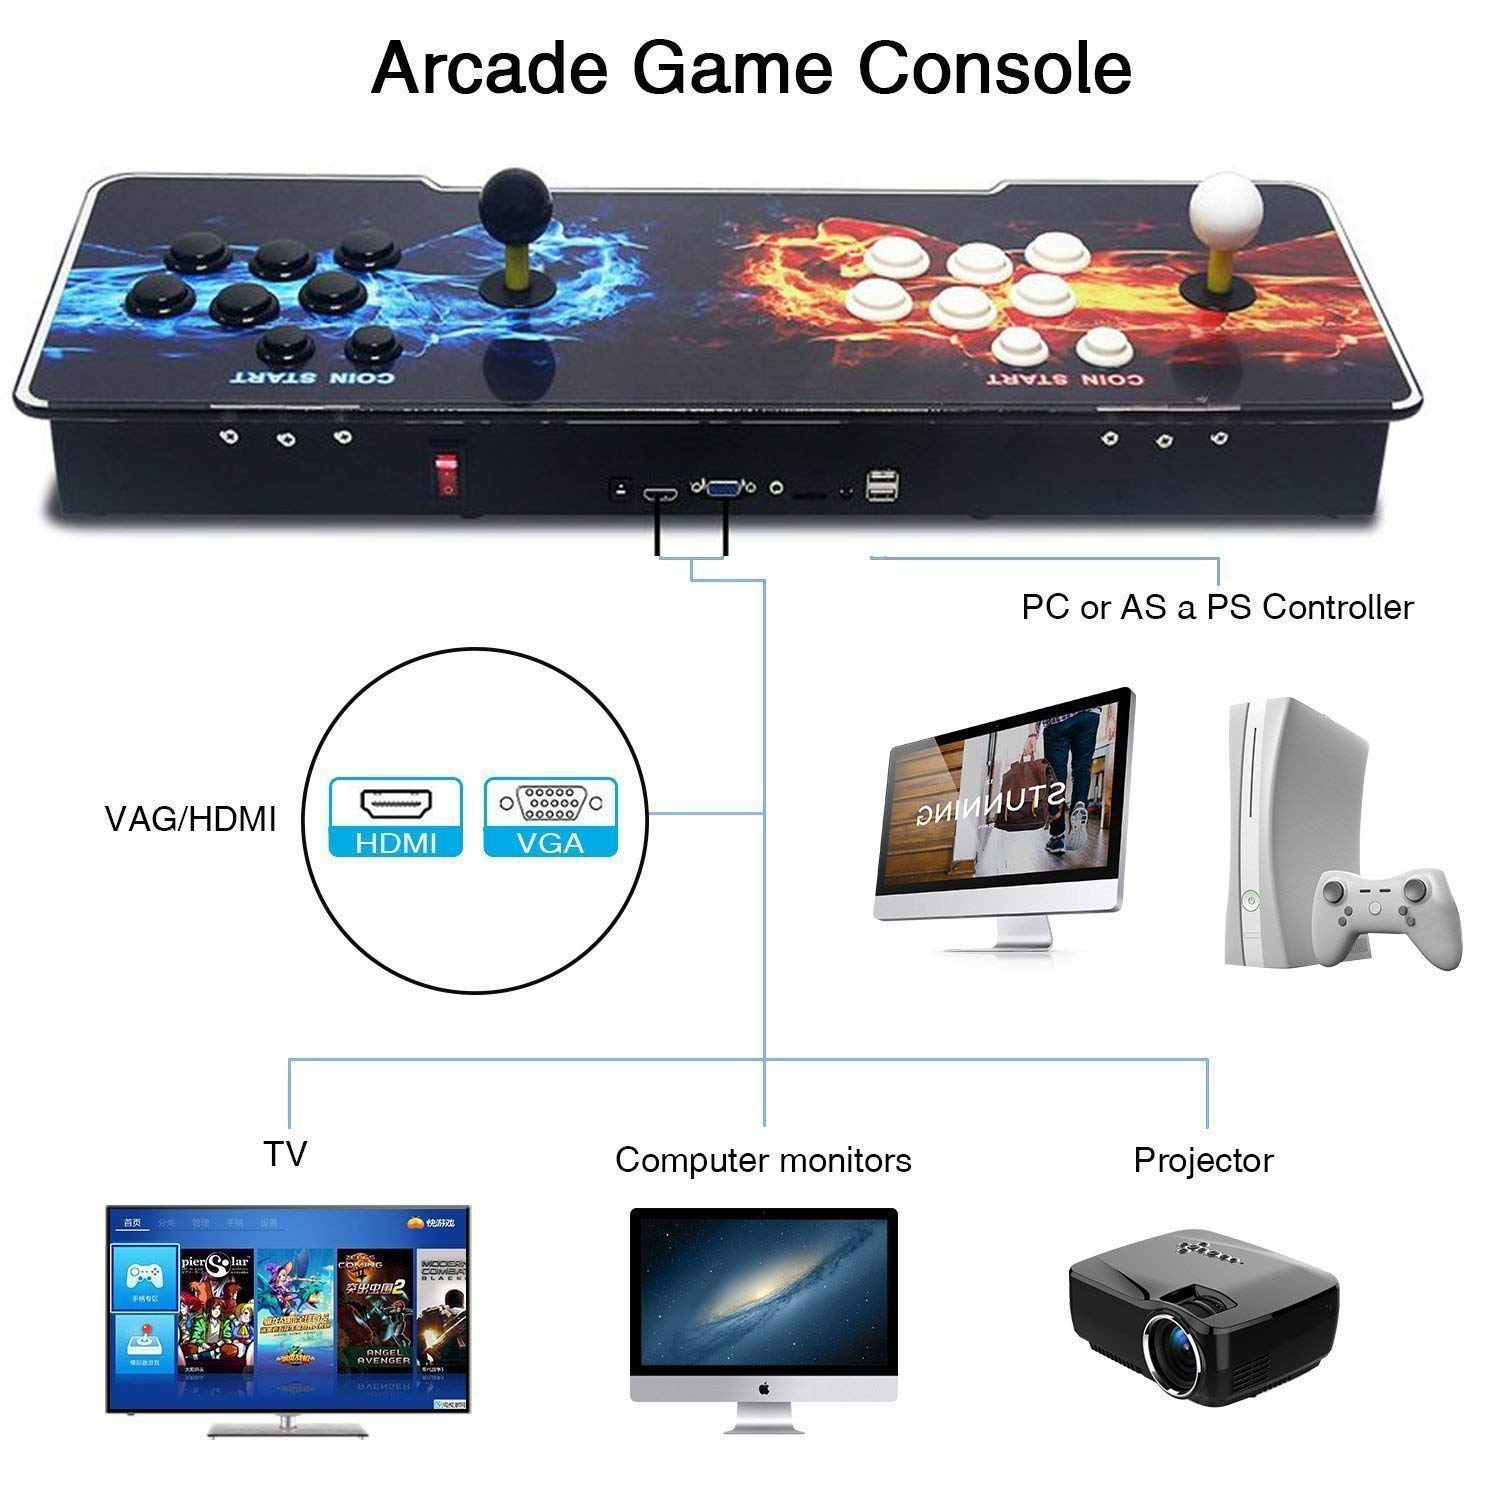 SeeKool Pandora 11 Arcade Video Game Console, 2255 in 1 Retro Video Games Colorful LED Double Stick Arcade Console, HDMI VGA USB Newest System Arcade Machine, Built-in Speaker by SeeKool (Image #2)